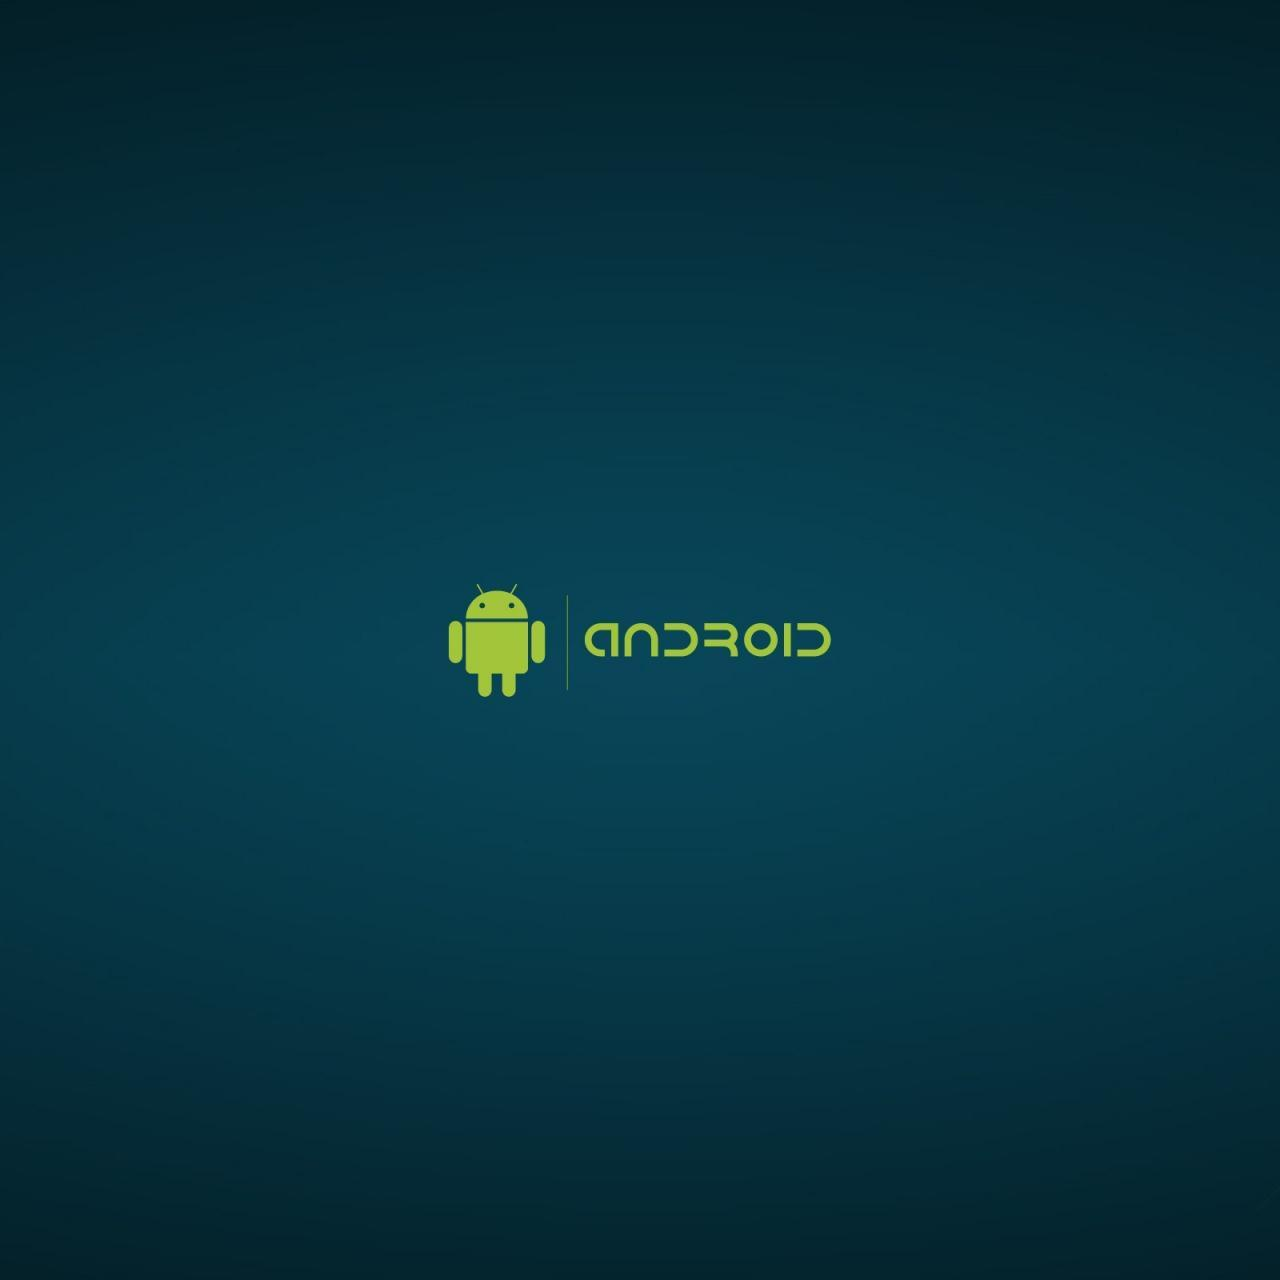 Android Tablet Wallpaper HD, 24 Desktop Images of Android Tablet